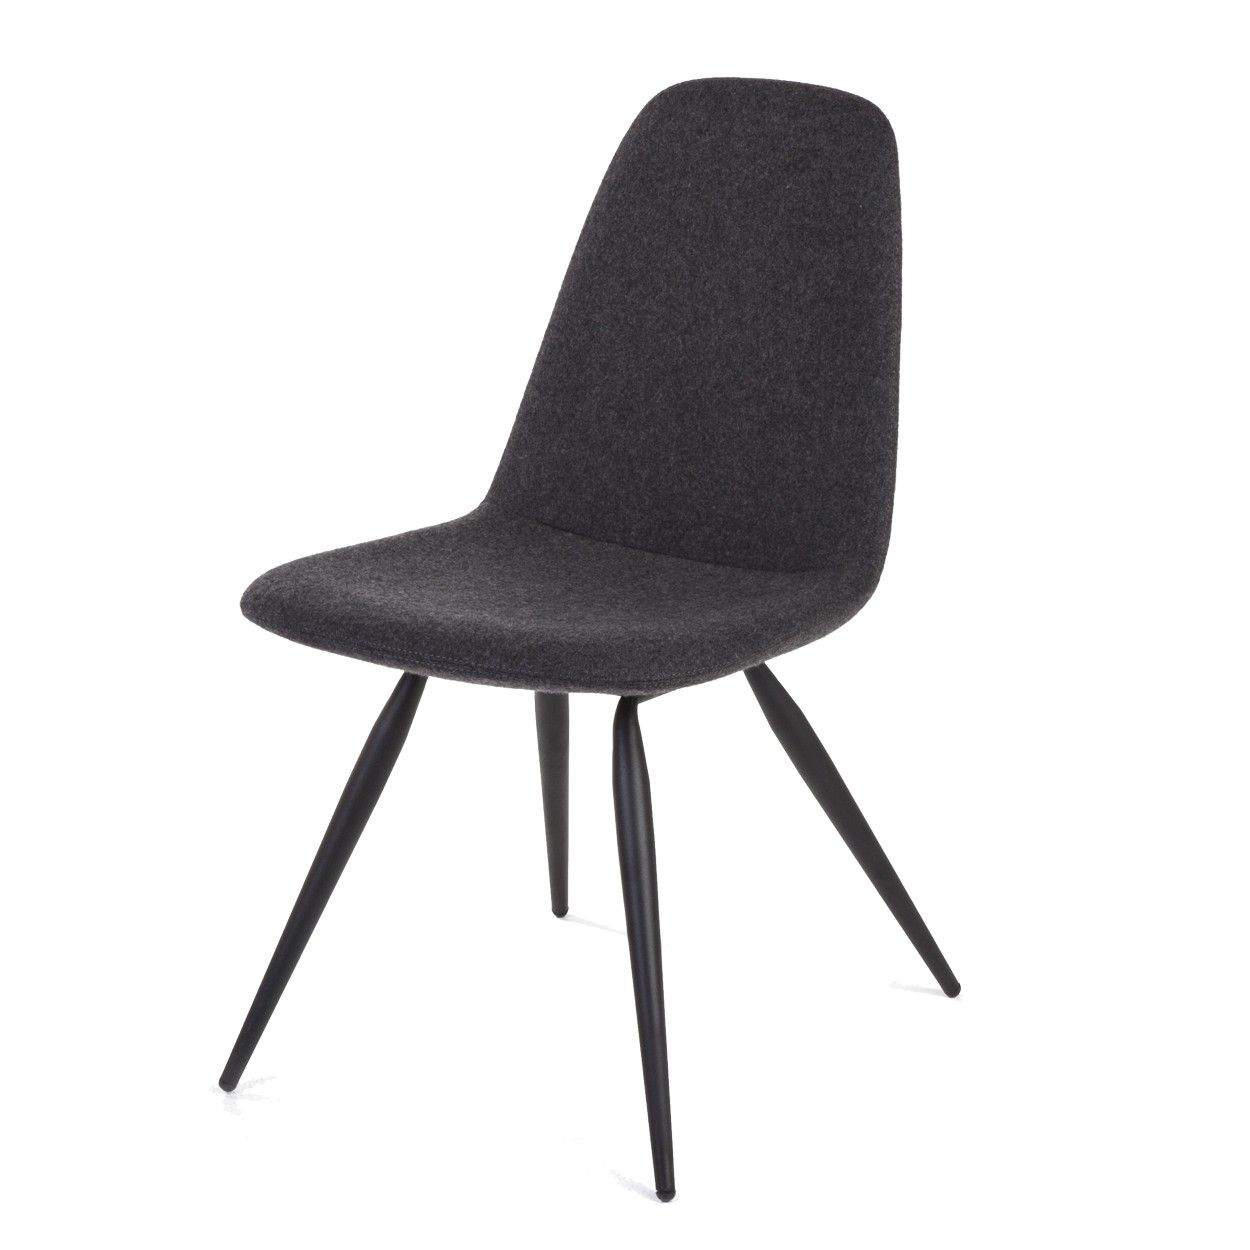 Bor Side Chair - Modern Dining Chair  http://www.franceandson.com/modern-bor-side-chair.html